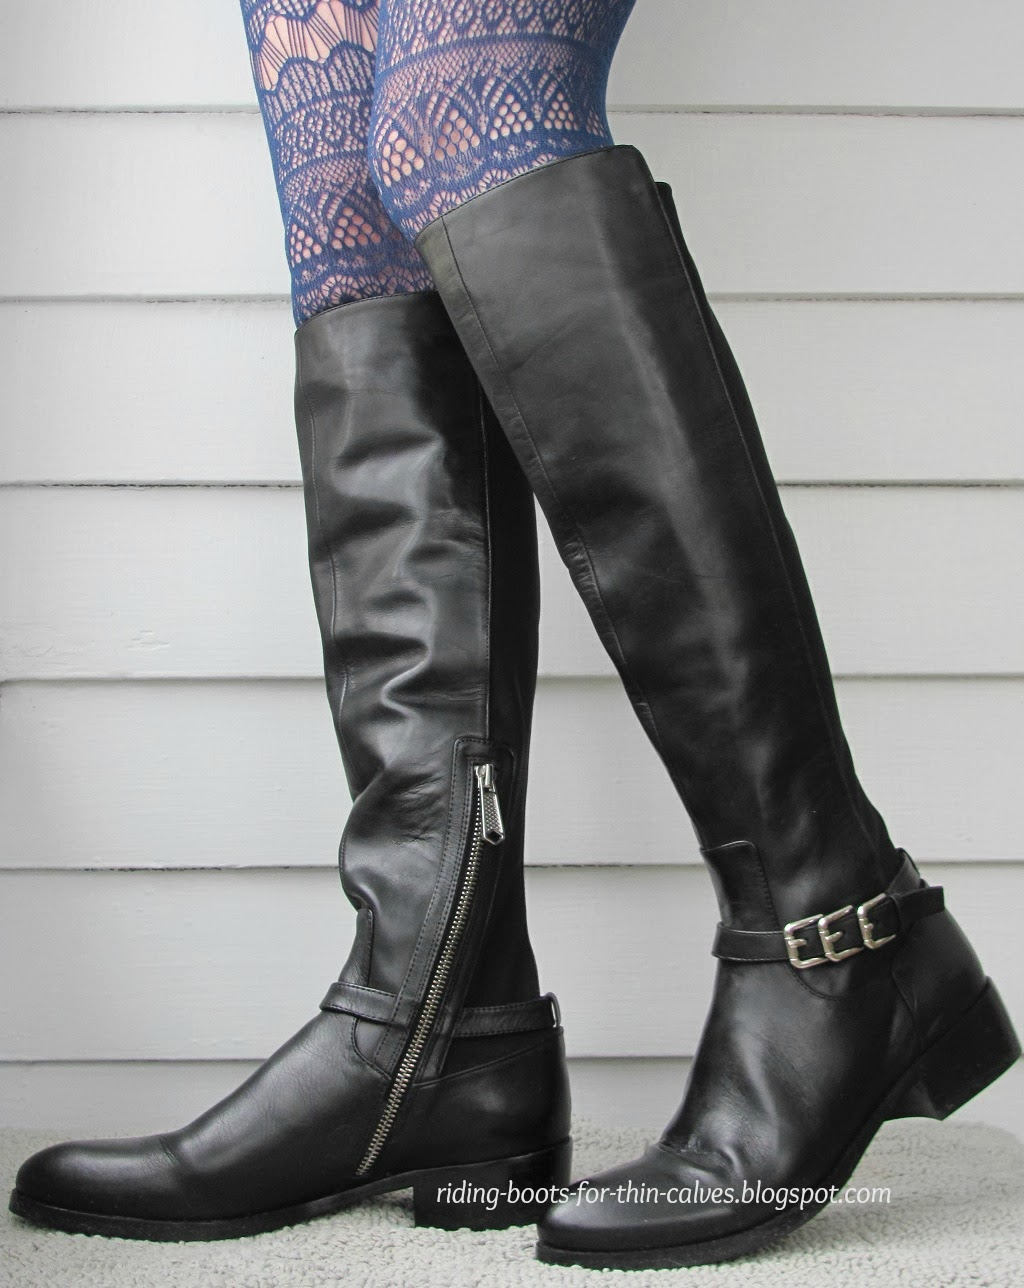 Howdy Slim! Riding Boots for Thin Calves: February 2014